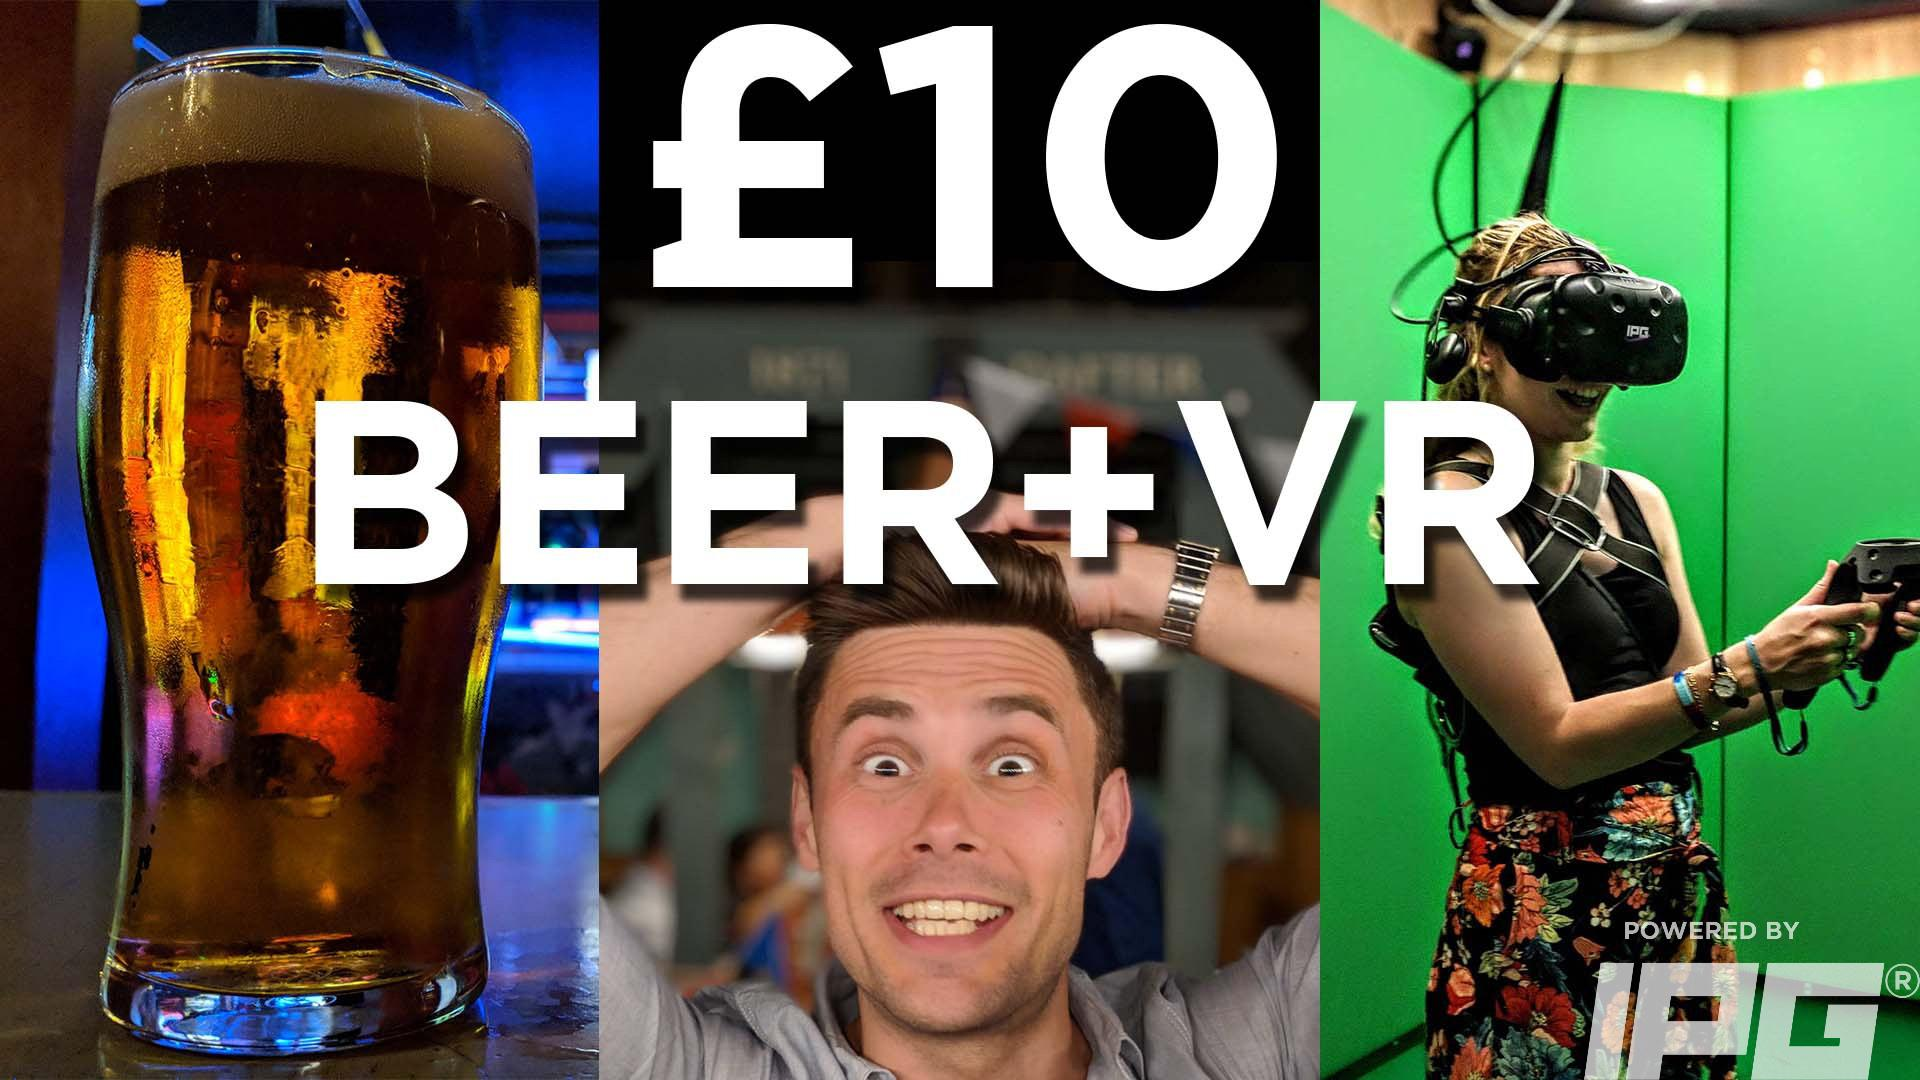 IPG VR £10 UNLIMITED VIRTUAL REALITY WEDNESDAYS